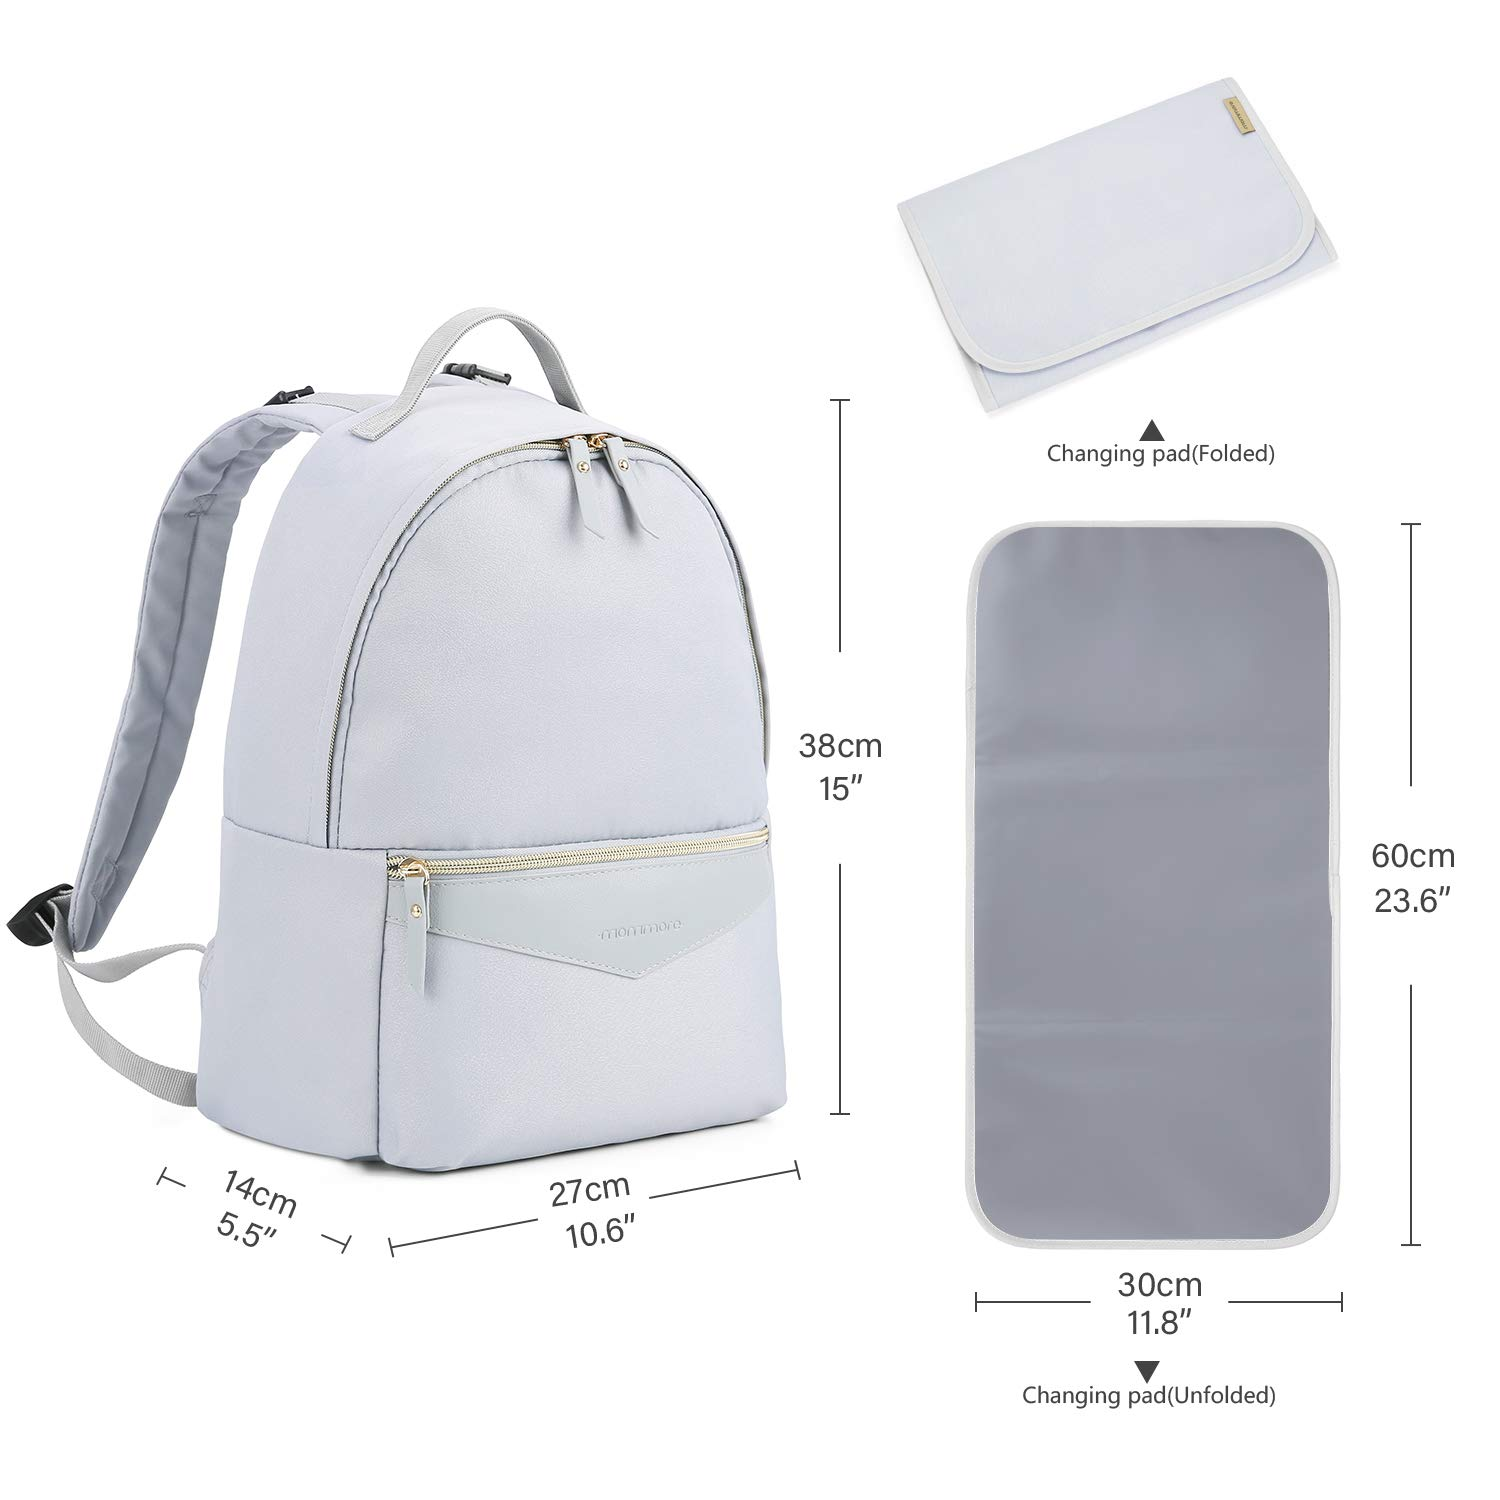 mommore Changing Bag Backpack Lightweight Backpack for Baby with Changing Mat and Pram Clips